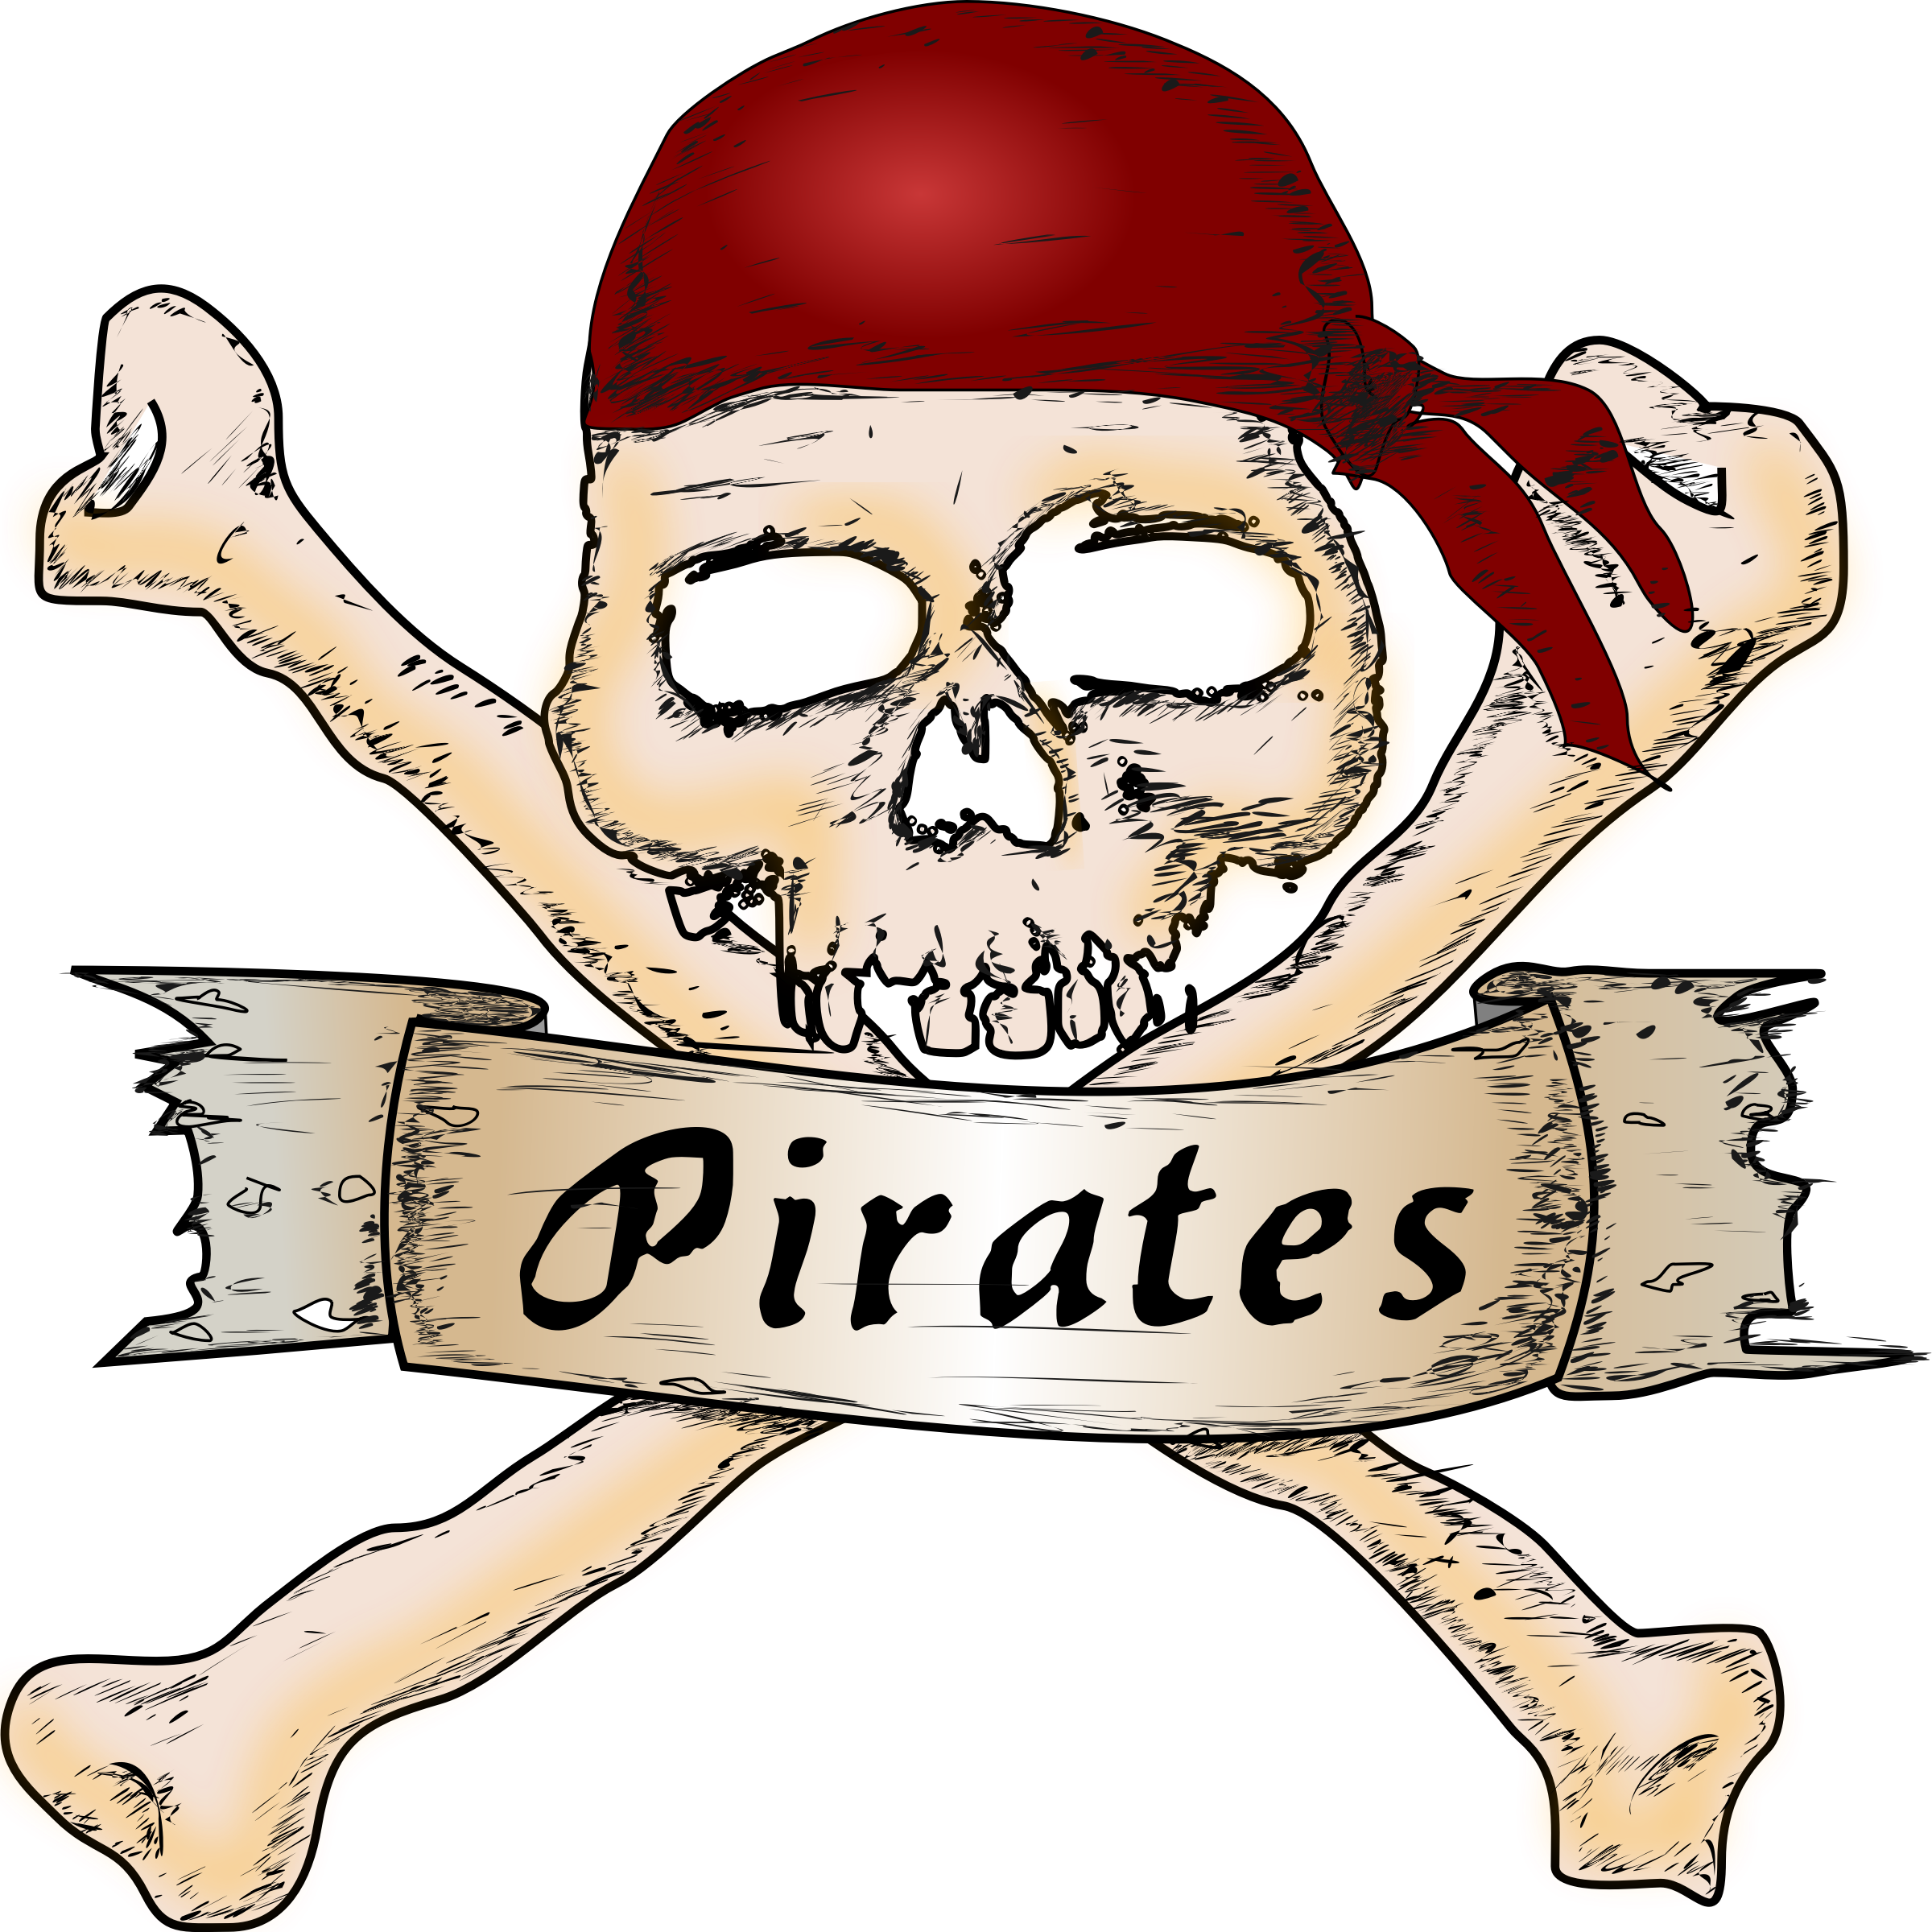 pirates by molumen